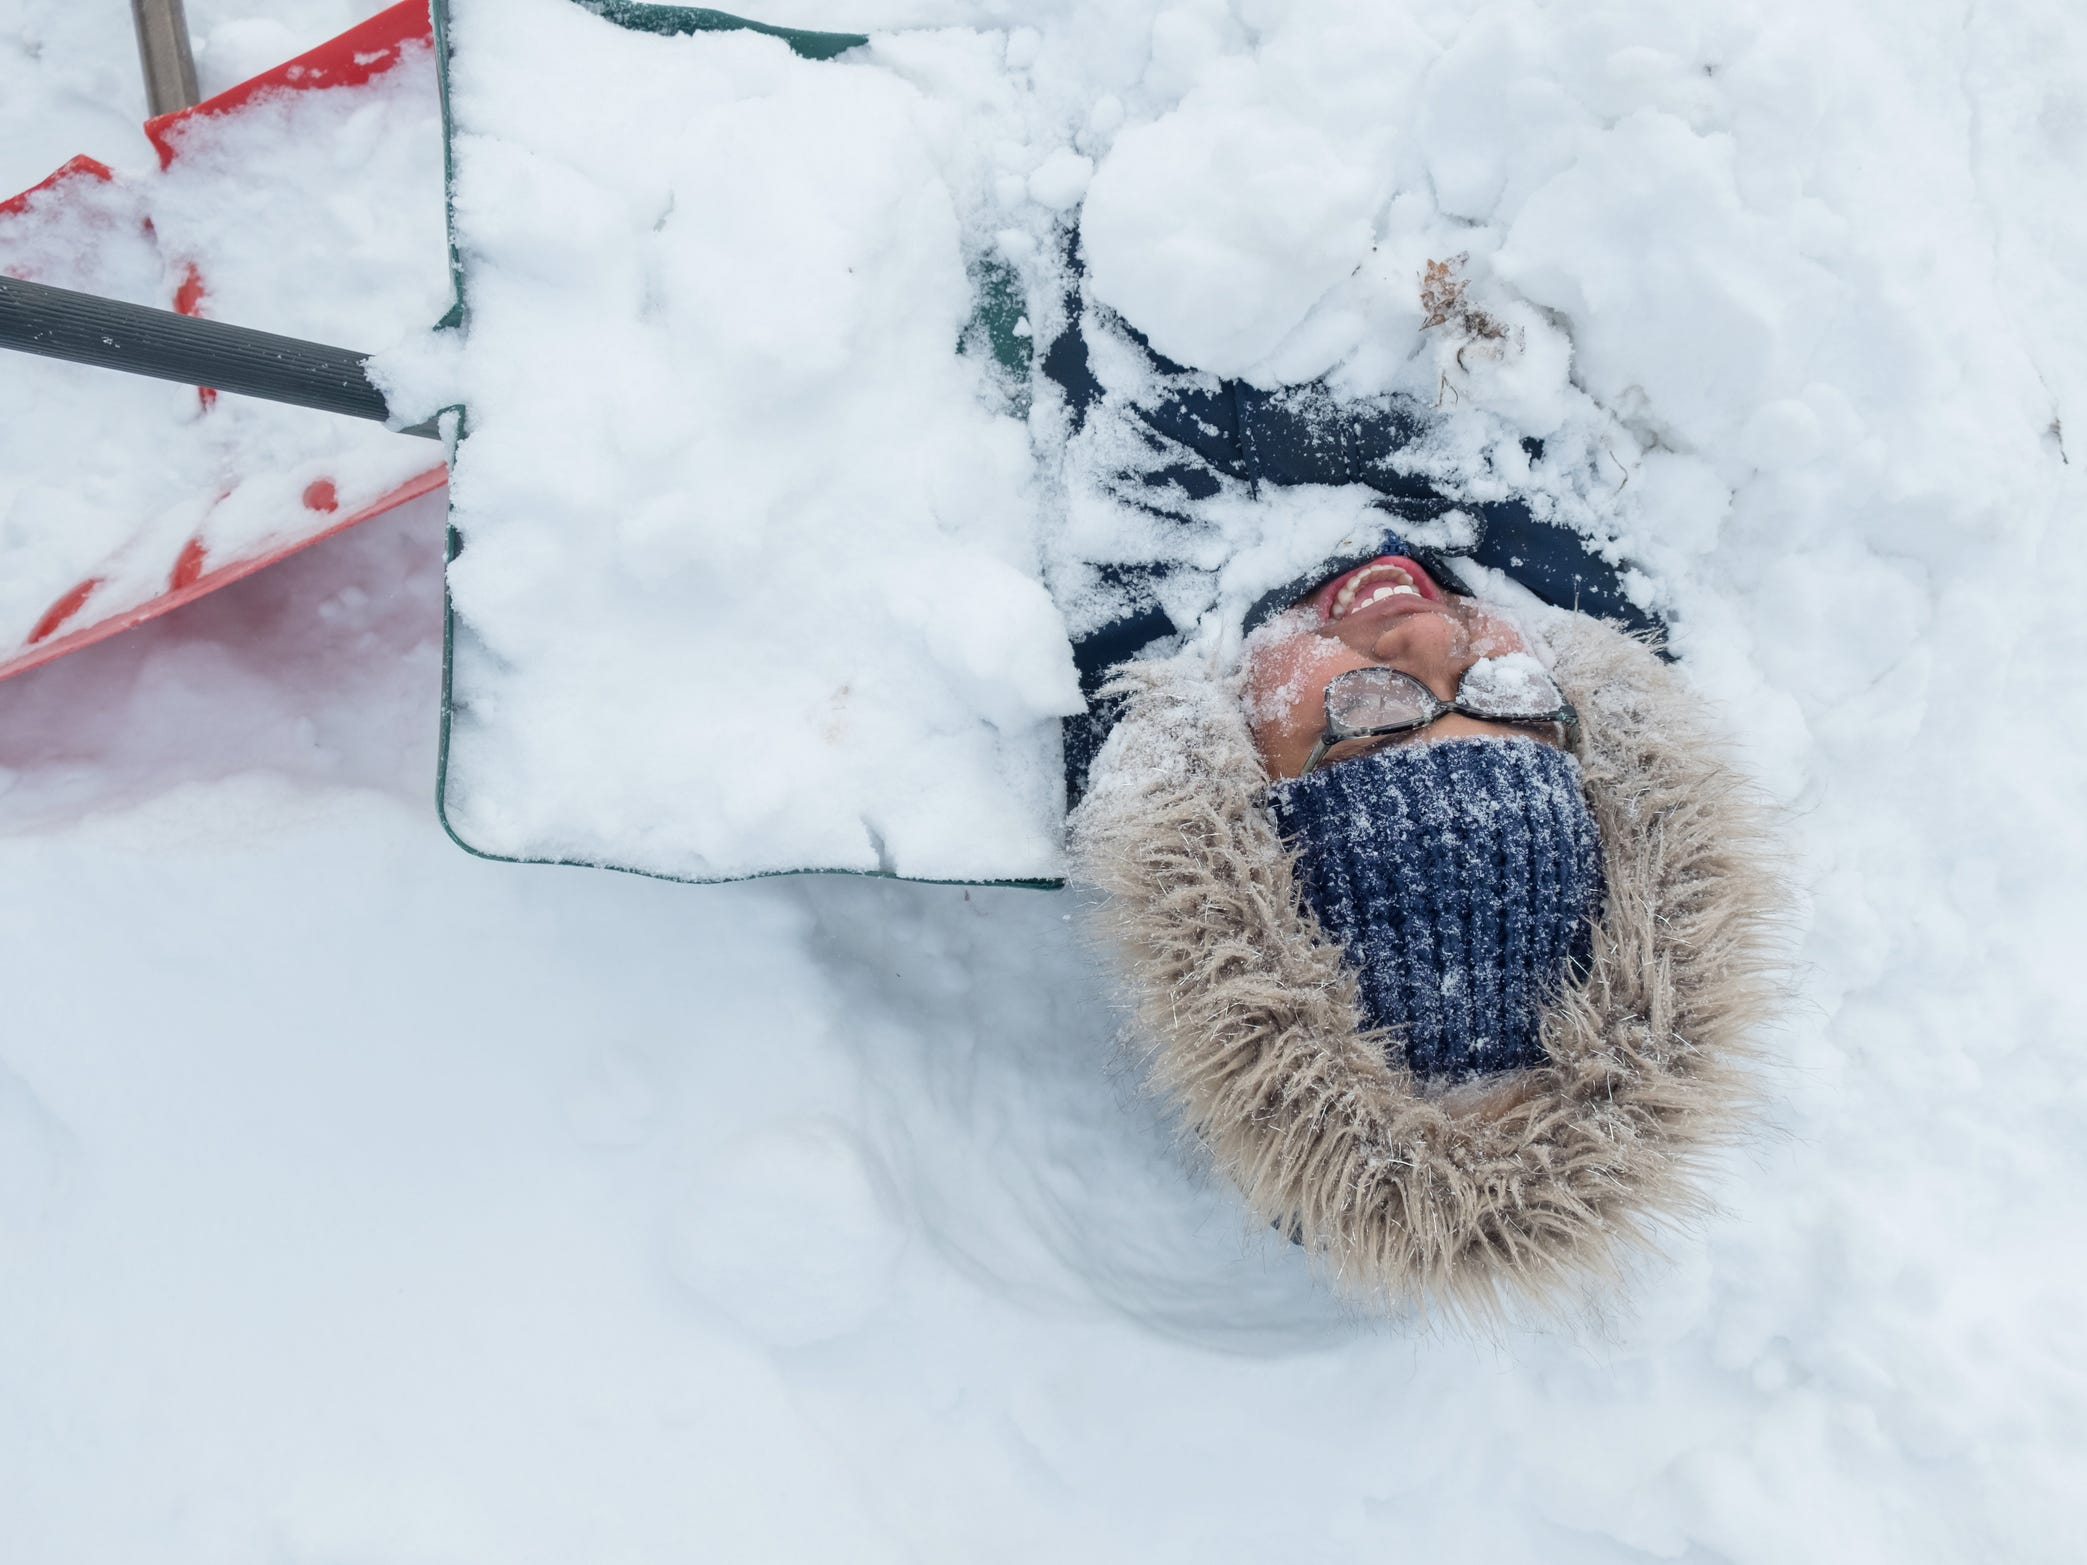 Jan 29, 2019; Flint, MI, USA; Ayanna Fulton of Flint reacts to the cold as her brother Dramell Fulton Jr. adds snow while burying her outside of their house on Billings St. while home on their second snow day. Mandatory Credit: Ryan Garza/Detroit Free Press via USA TODAY NETWORK ORIG FILE ID:  20190129_gma_usa_007.jpg